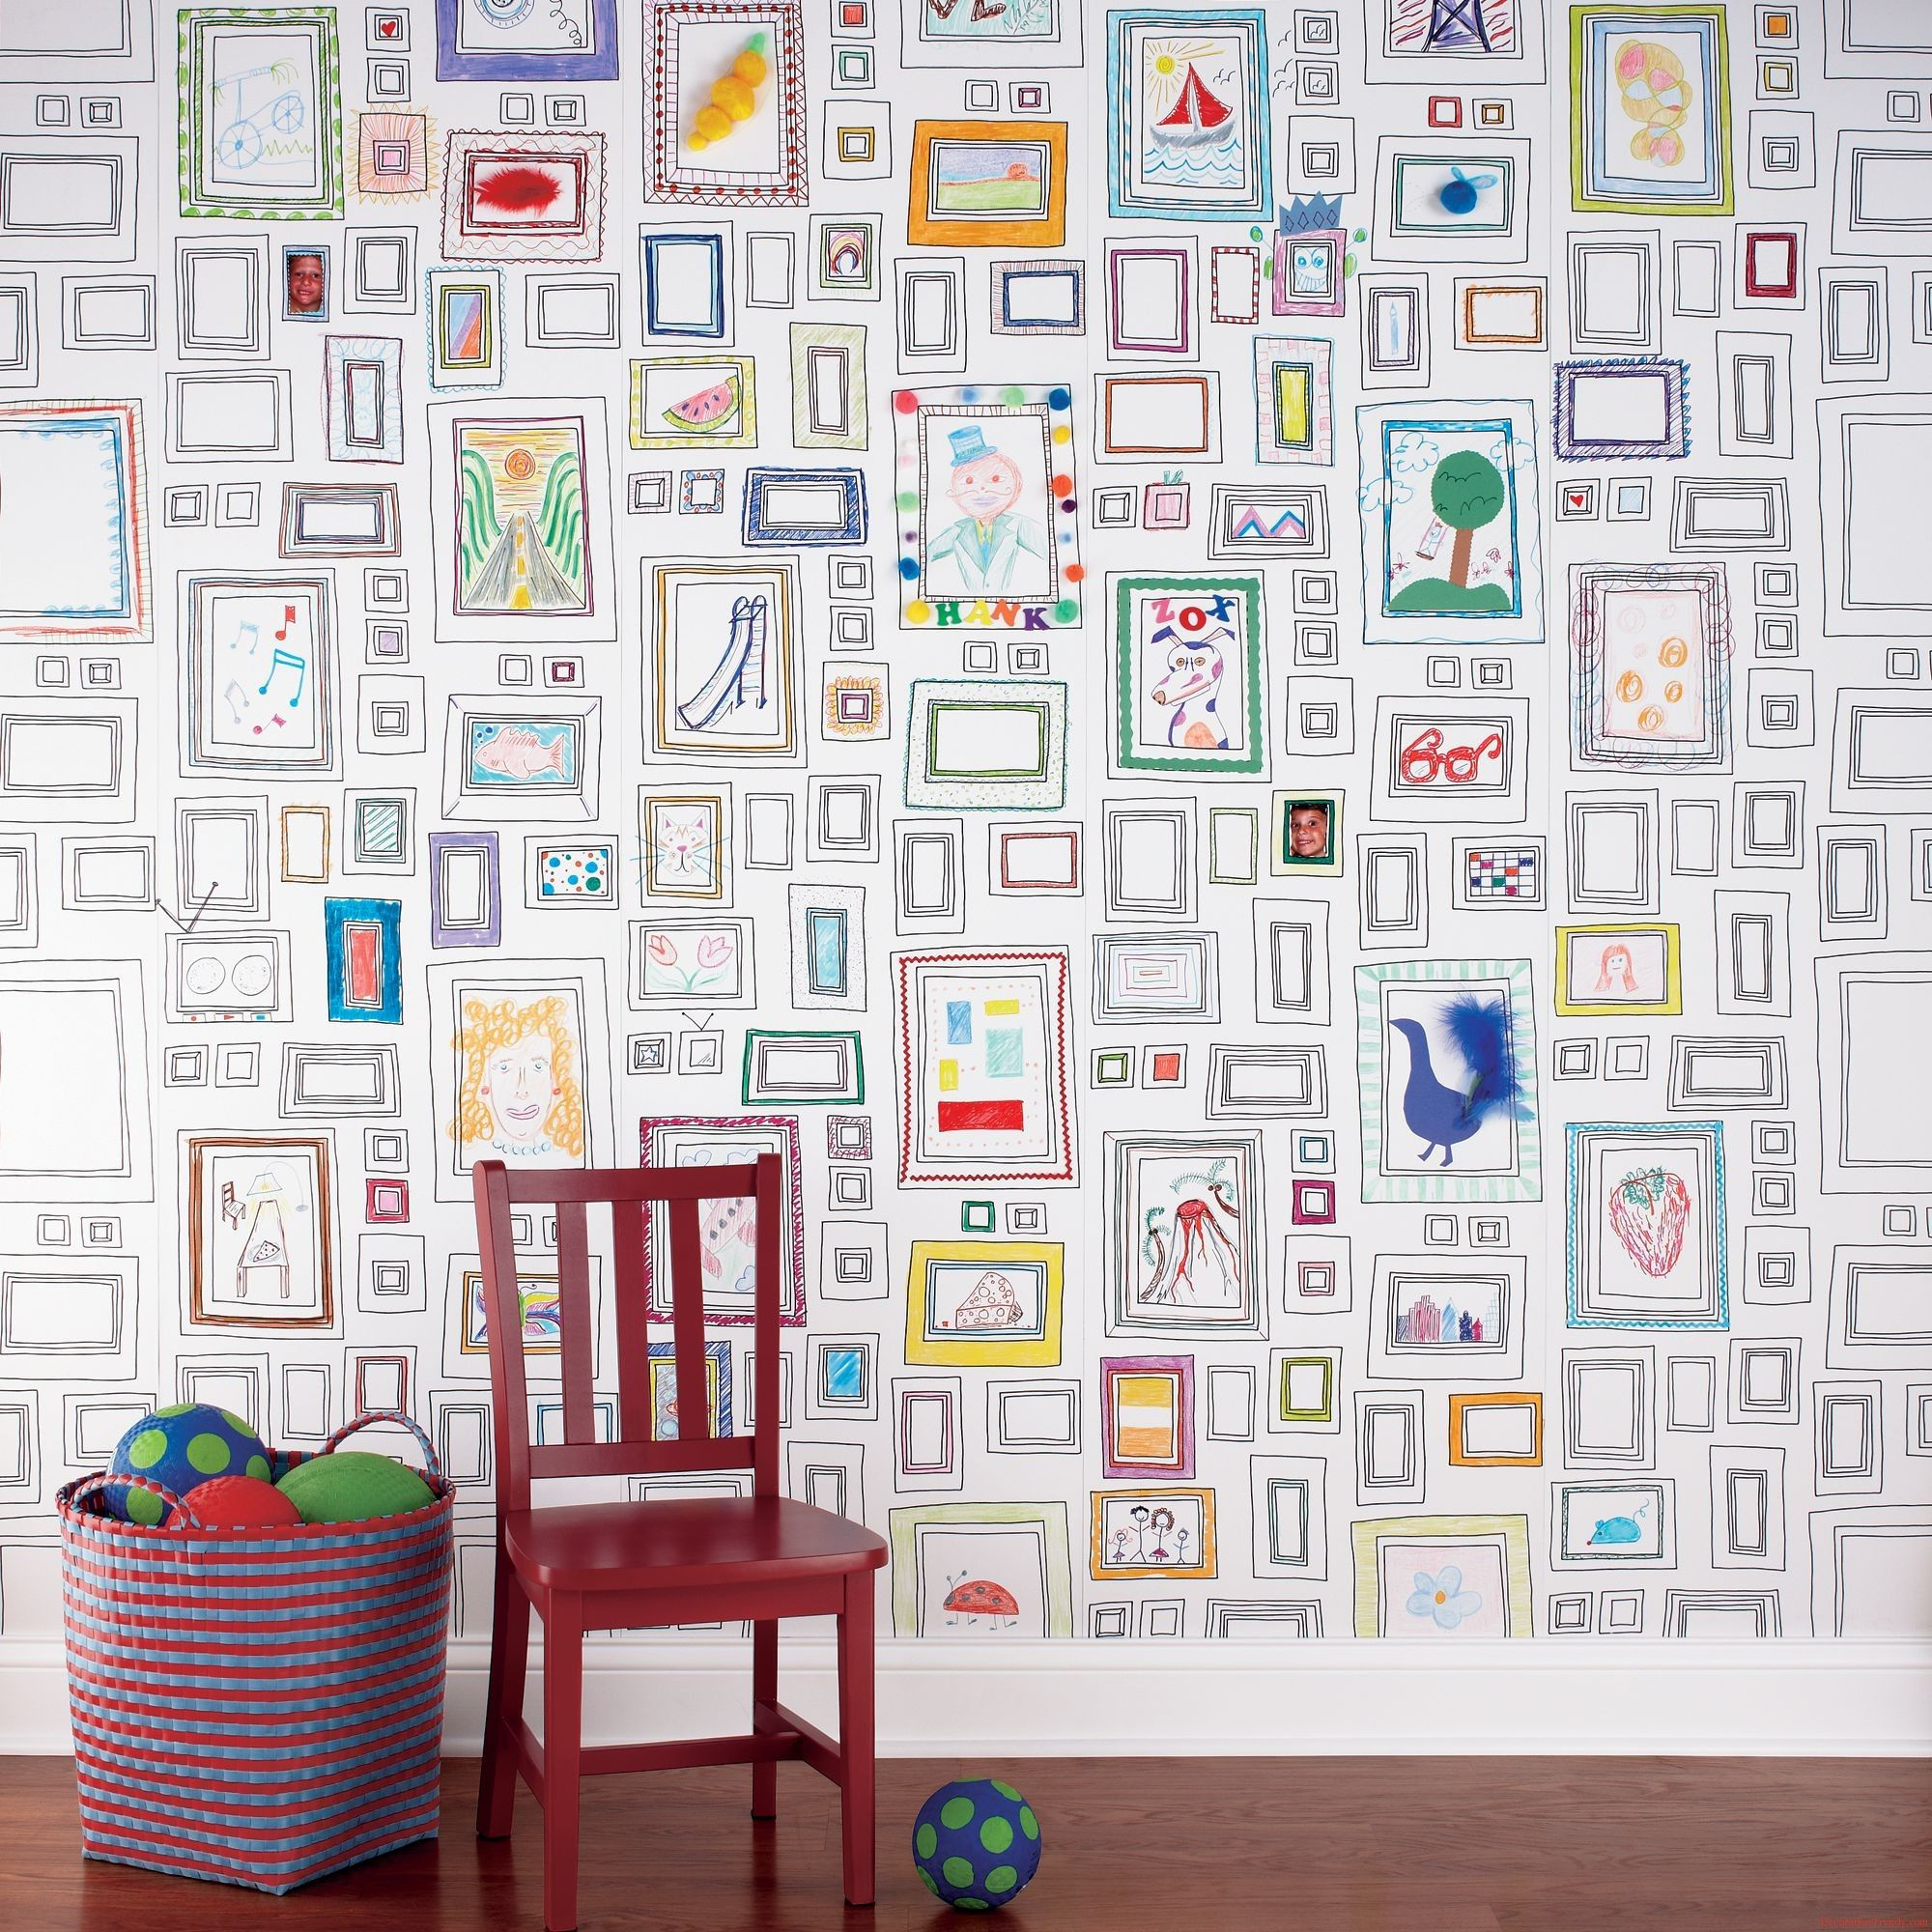 Wall Drawing Ideas Warm Home Design